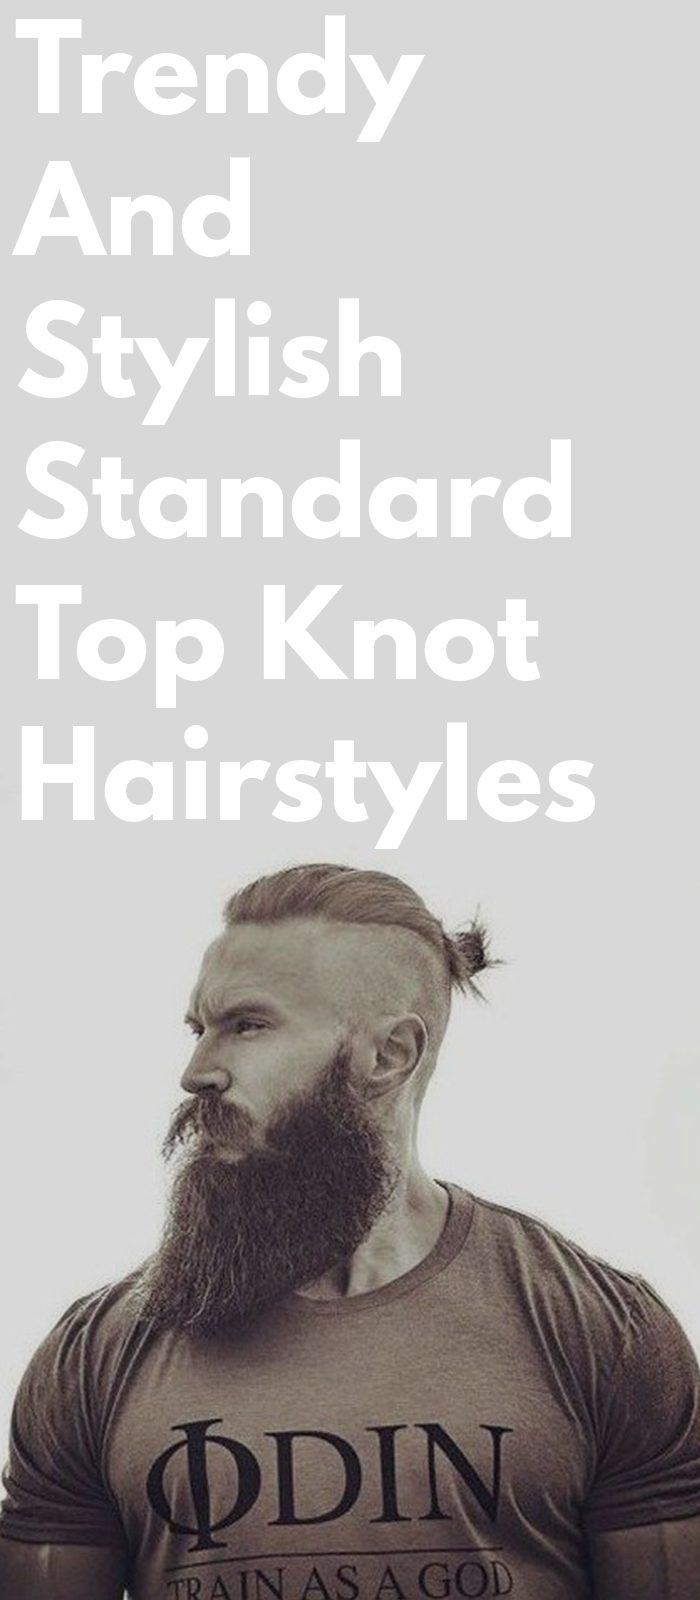 Trendy And Stylish Standard Top Knot Hairstyles